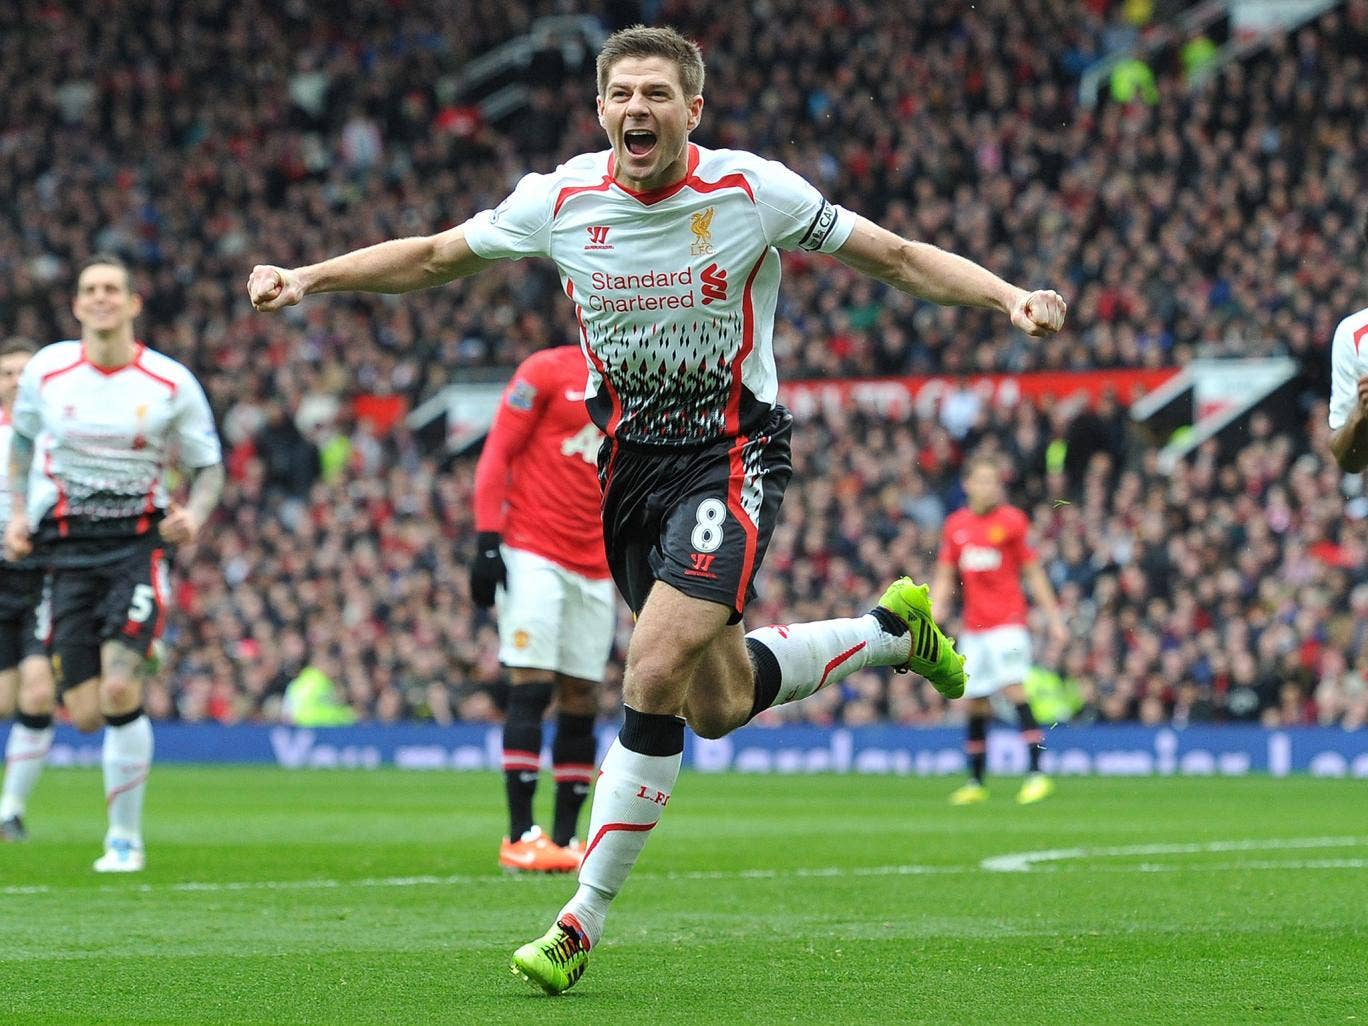 Steven Gerrard celebrates scoring his second penalty in the 3-0 win over Manchester United